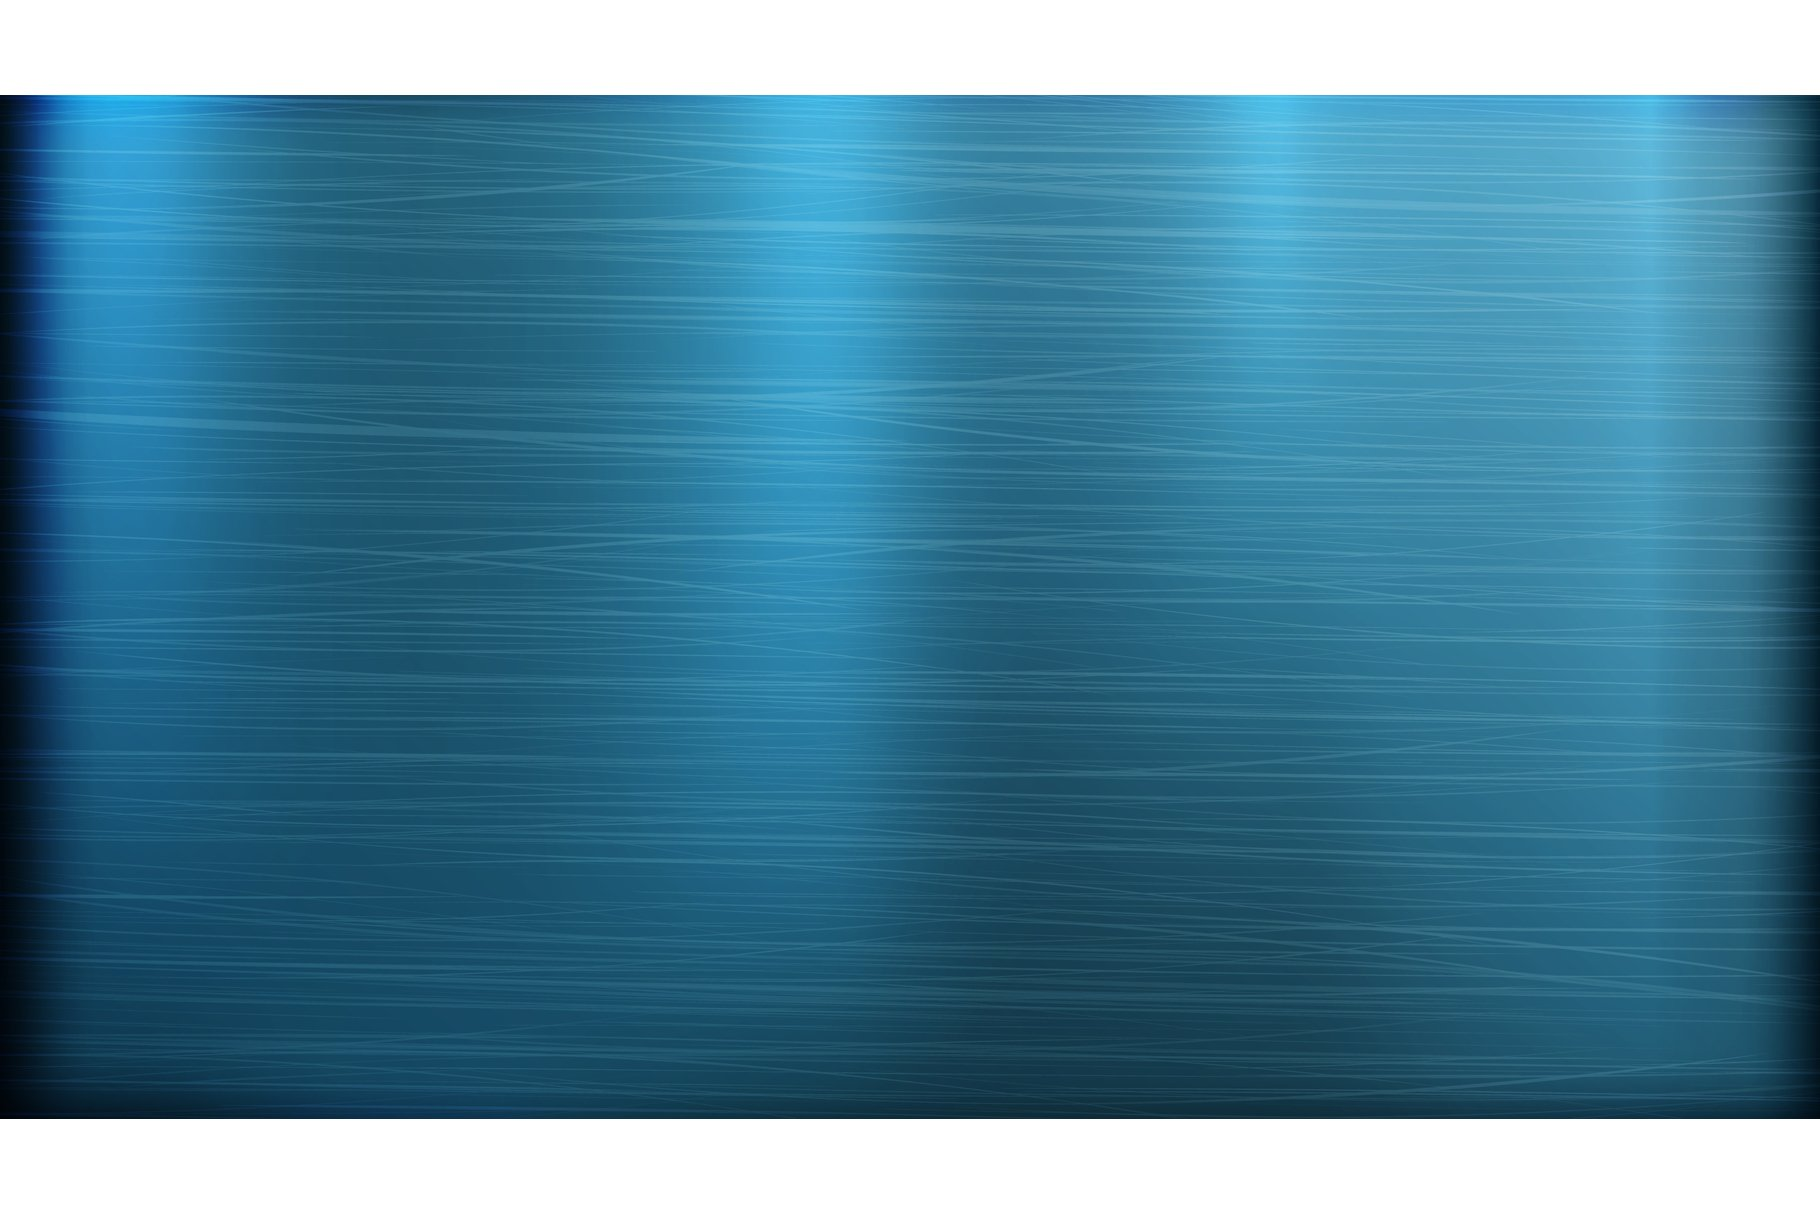 Blue Metal Abstract Technology Background. Polished, Brushed example image 1